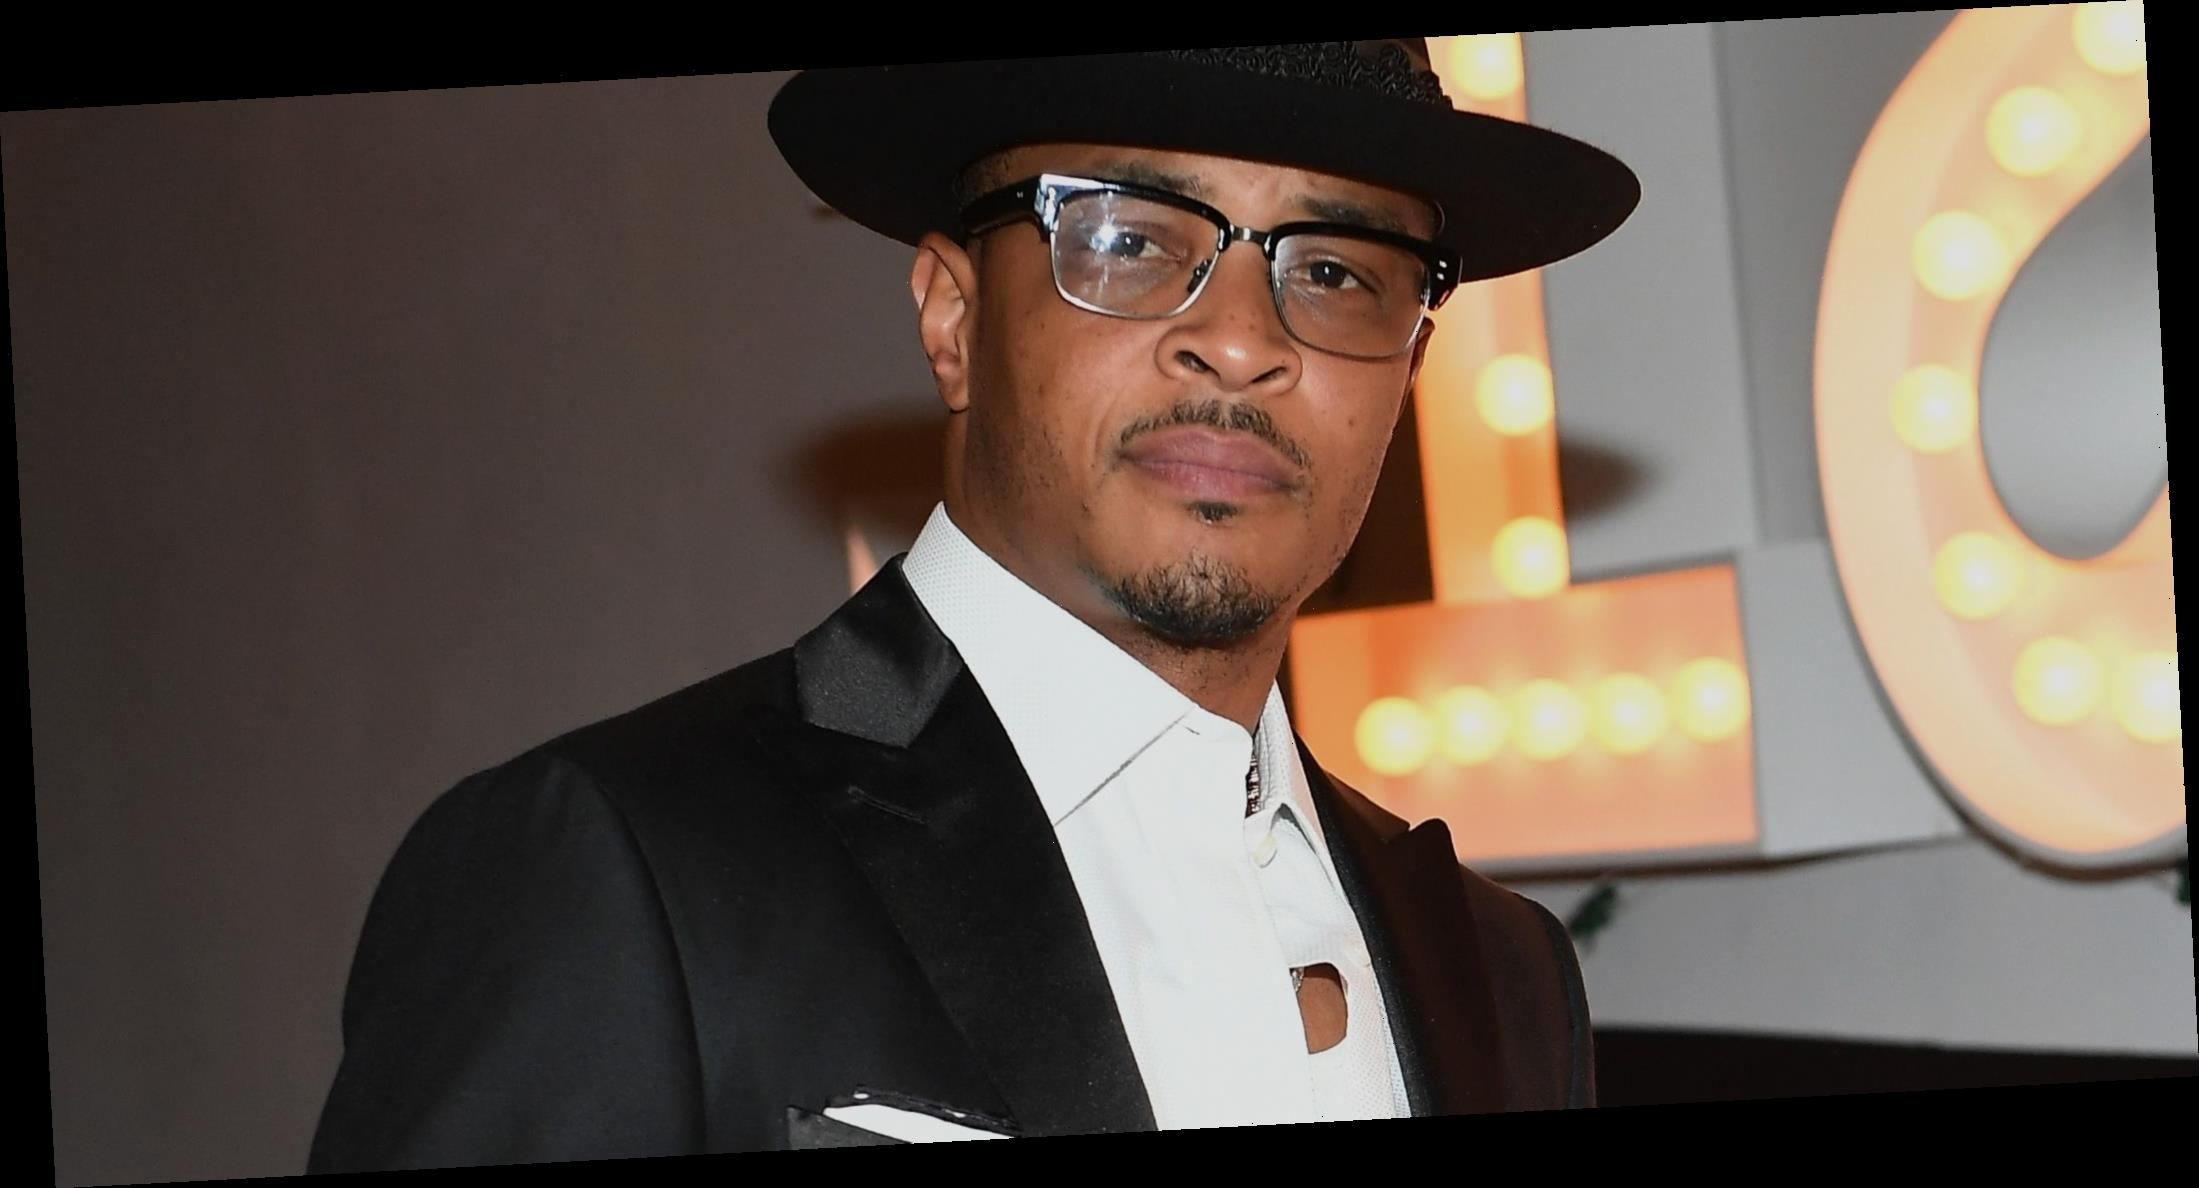 T.I. Insists On Taking His Daughter To The Gyno To Make Sure Her Hymen Is 'Intact'